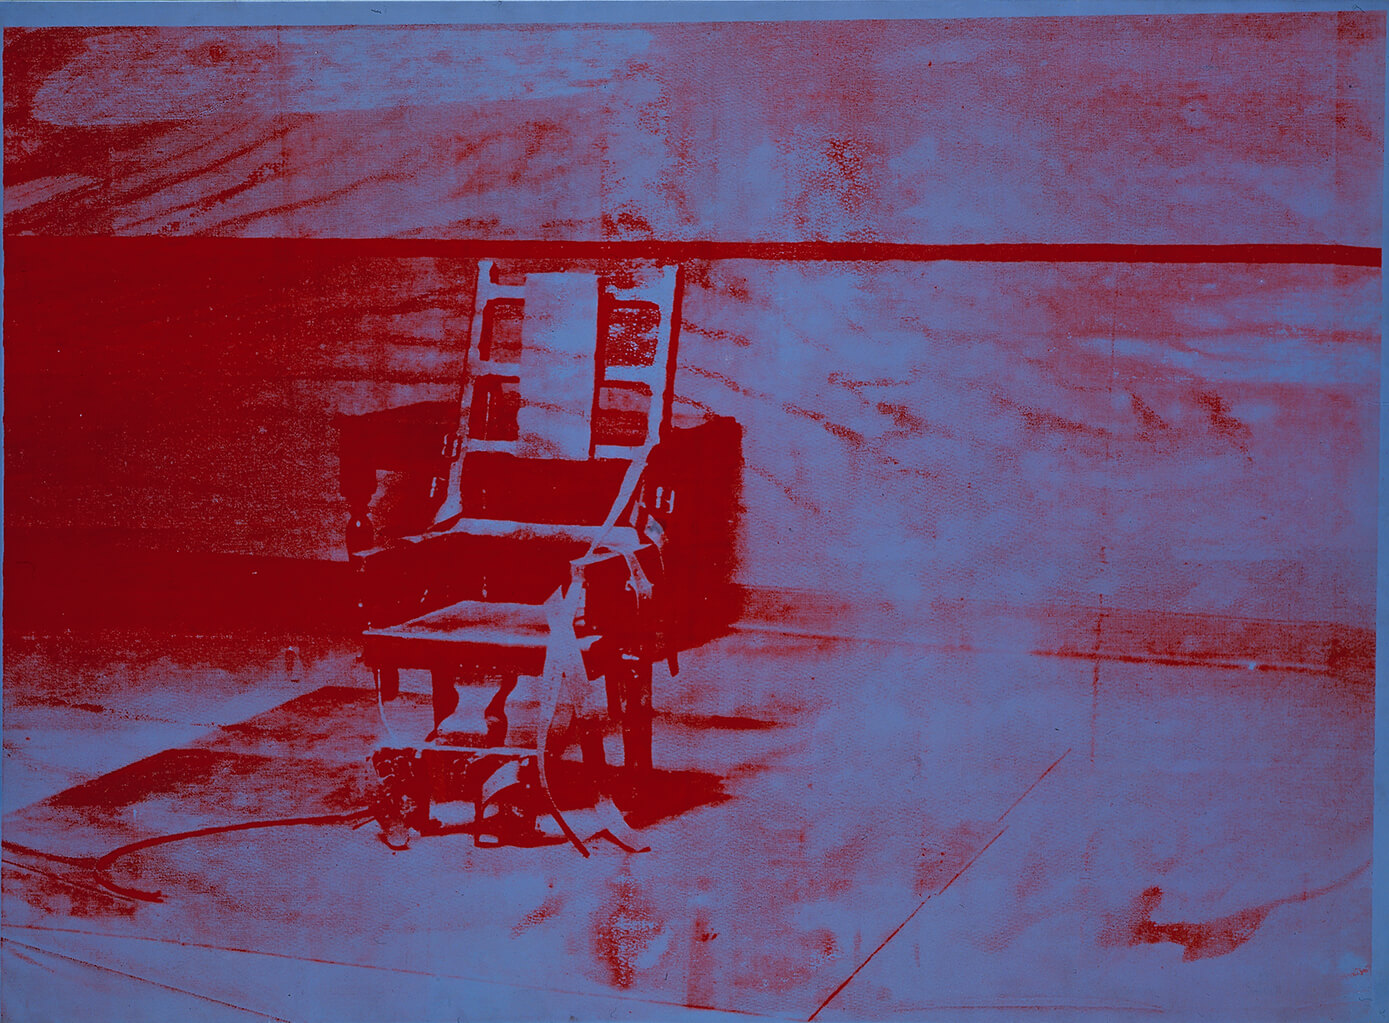 Andy Warhol (1928-1987), Big Electric Chair, 1967. © The Menil Collection, Houston. Photo by Hickey-Robertson, Houston. © The Andy Warhol Foundation for the Visual Arts, Inc. / ADAGP, Paris 2015.